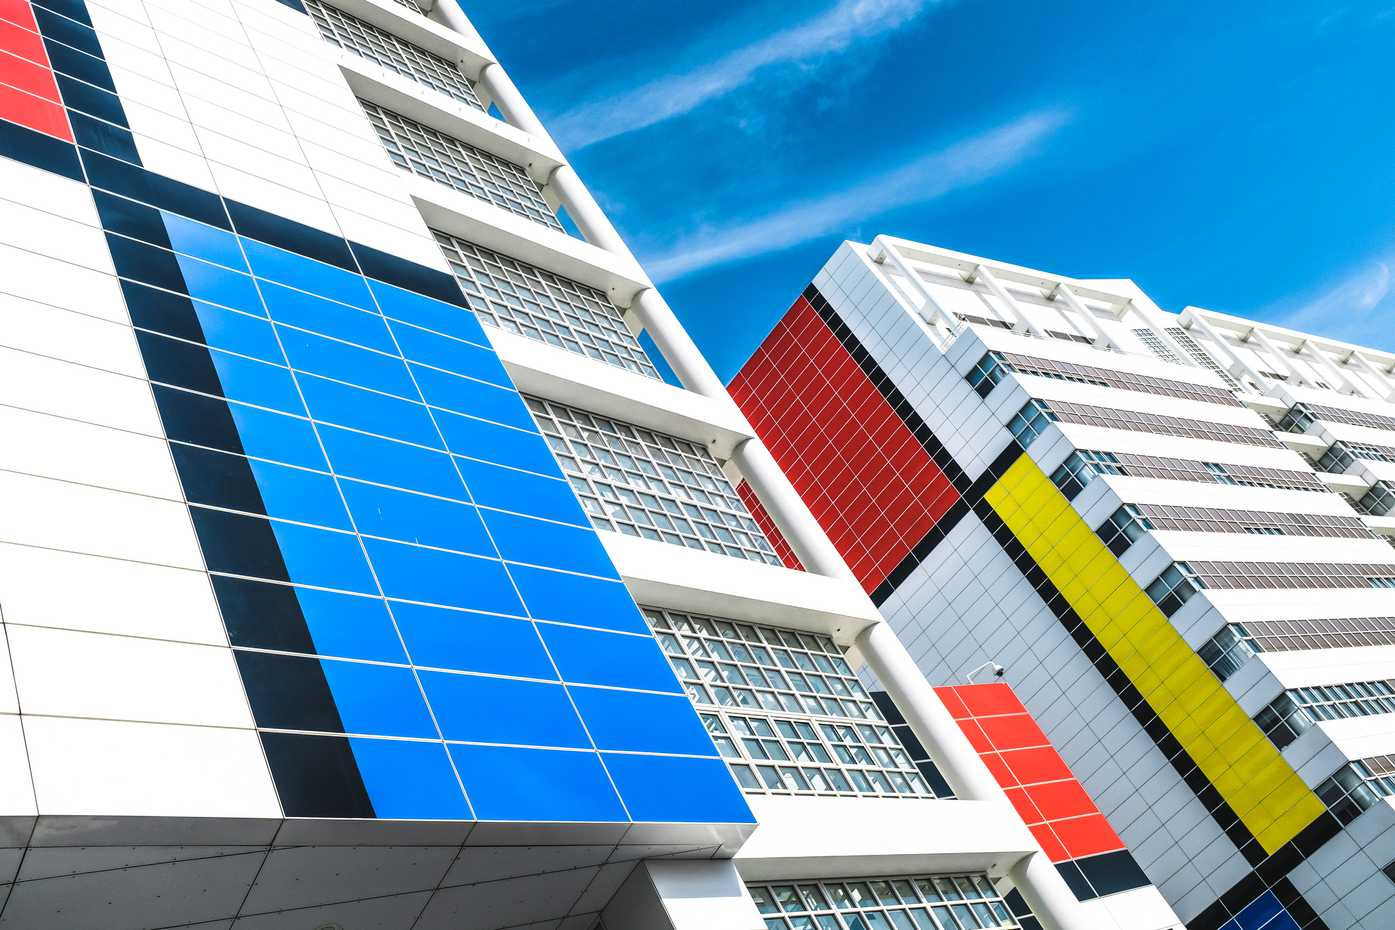 Mondrian decorations on Den Haag city hall and library